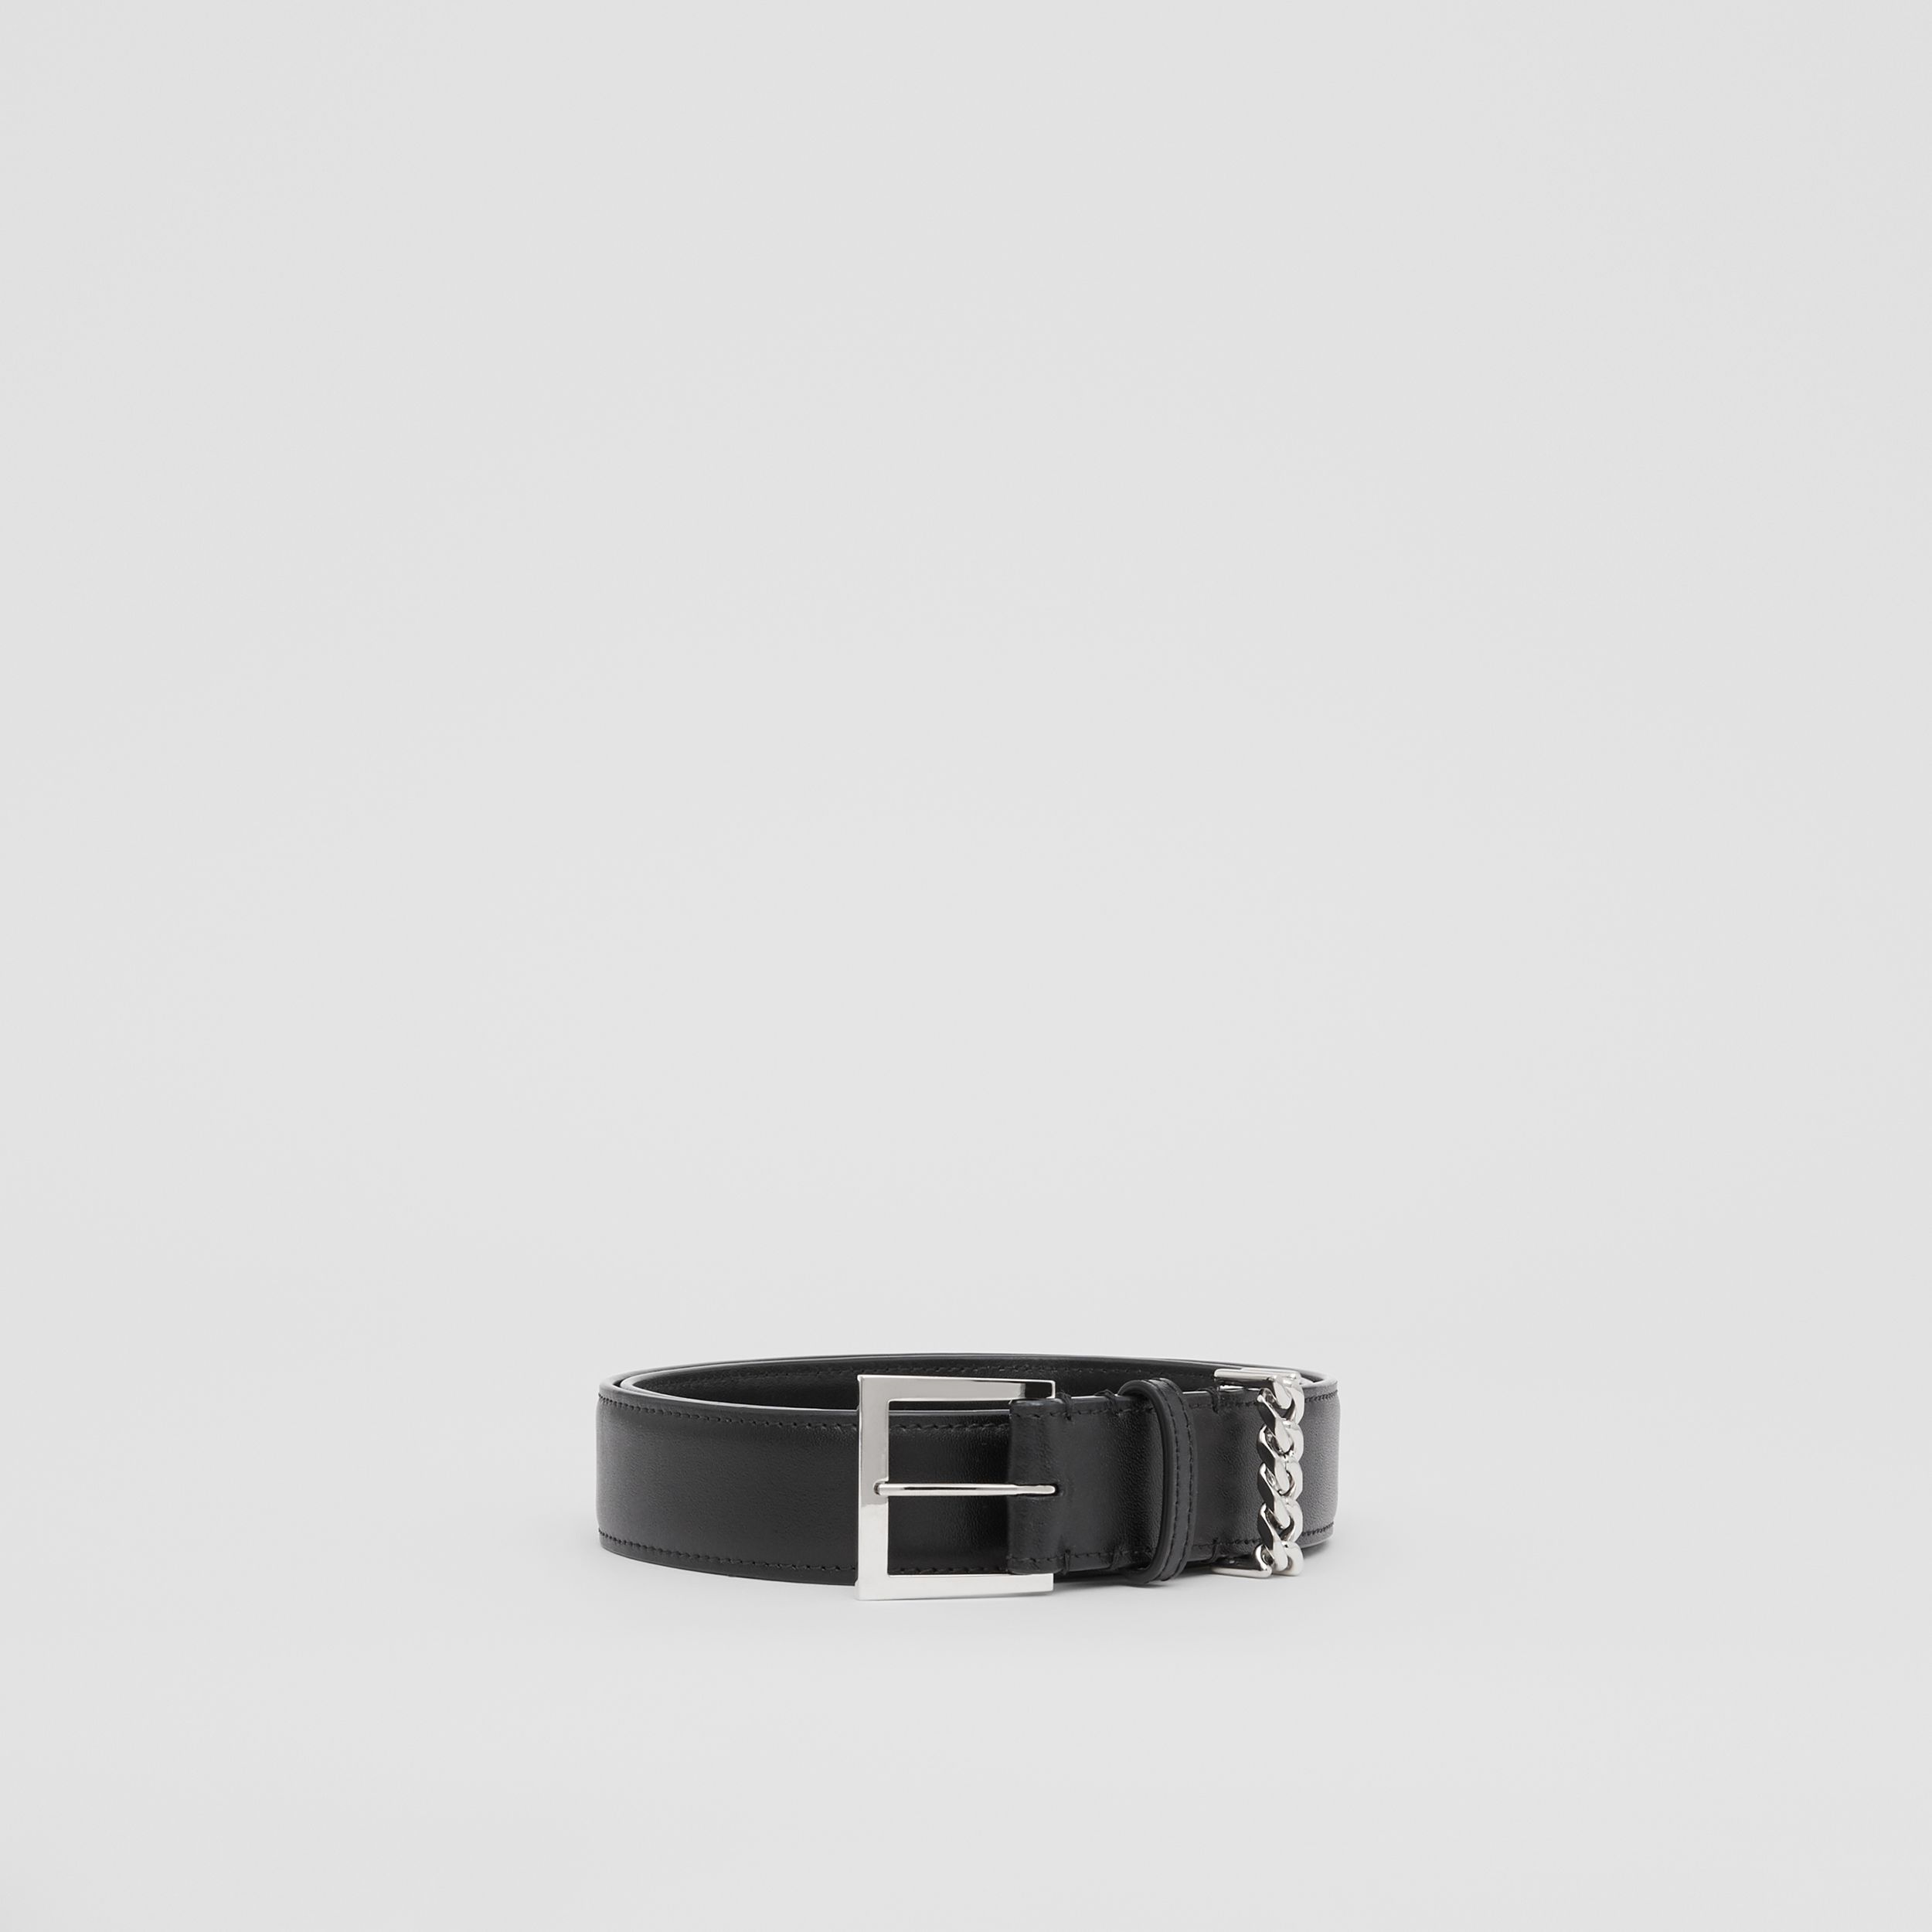 Chain Detail Leather Belt in Black/palladium | Burberry Singapore - 4